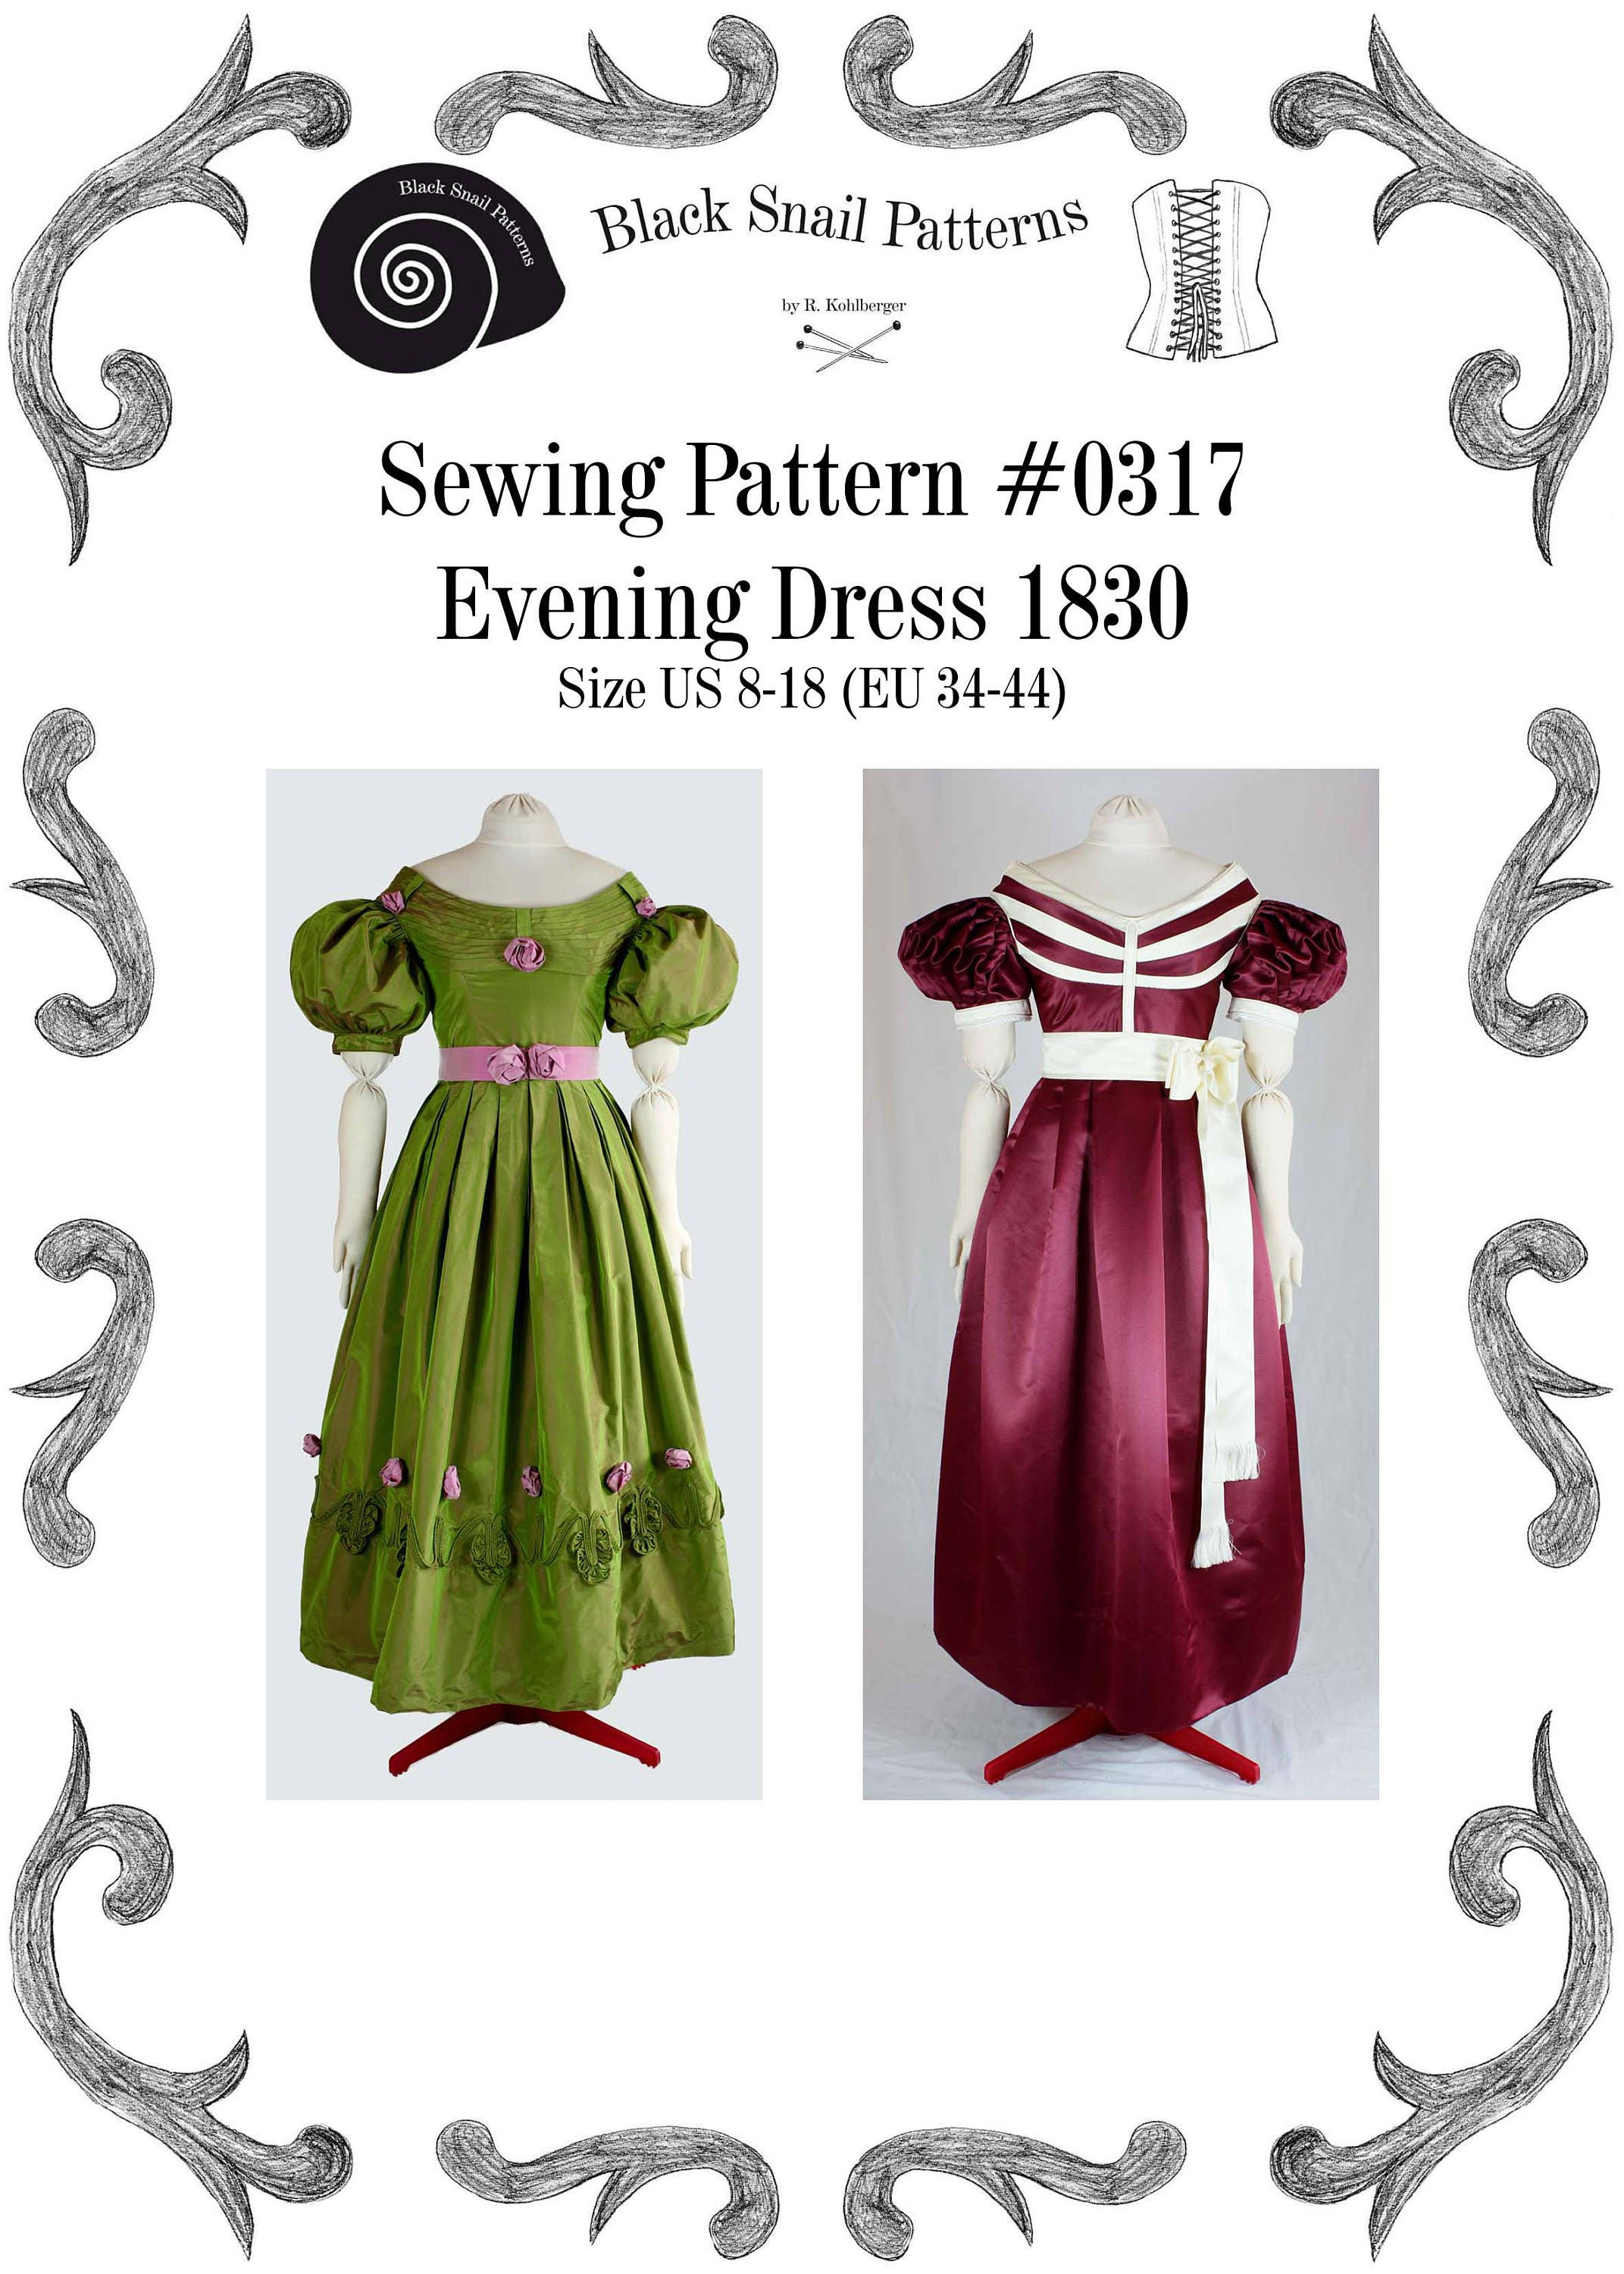 Biedermeier Evening Dress about 1830 Sewing Pattern 0317 Size